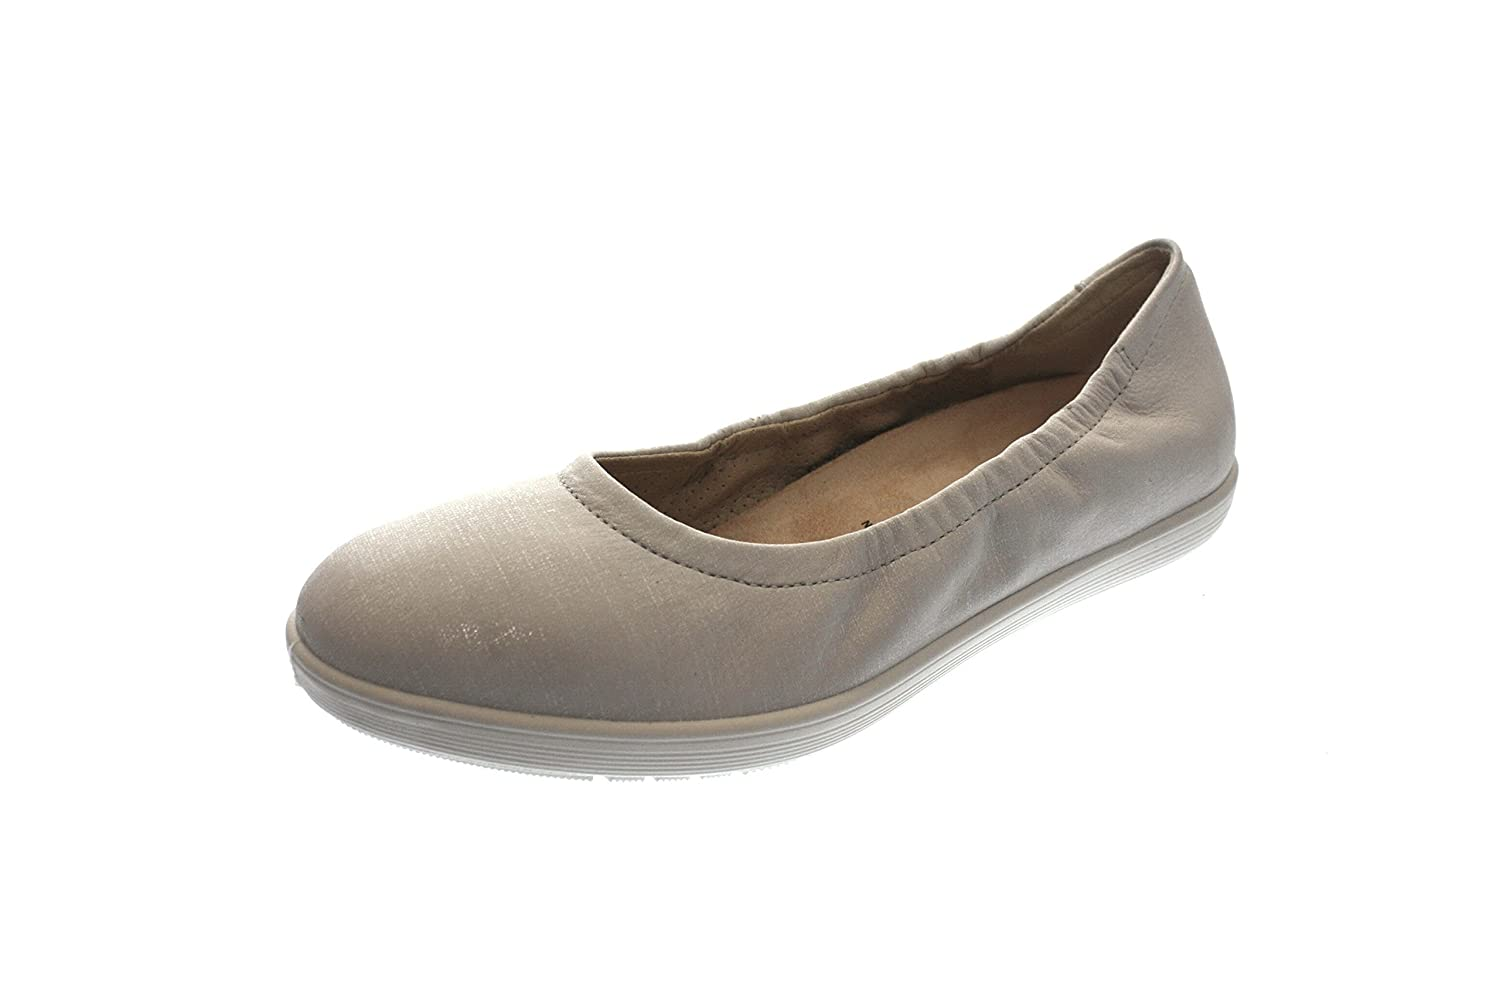 Damen Slipper 2-00830-09 Weiß 461089 Legero sApUIAlL76